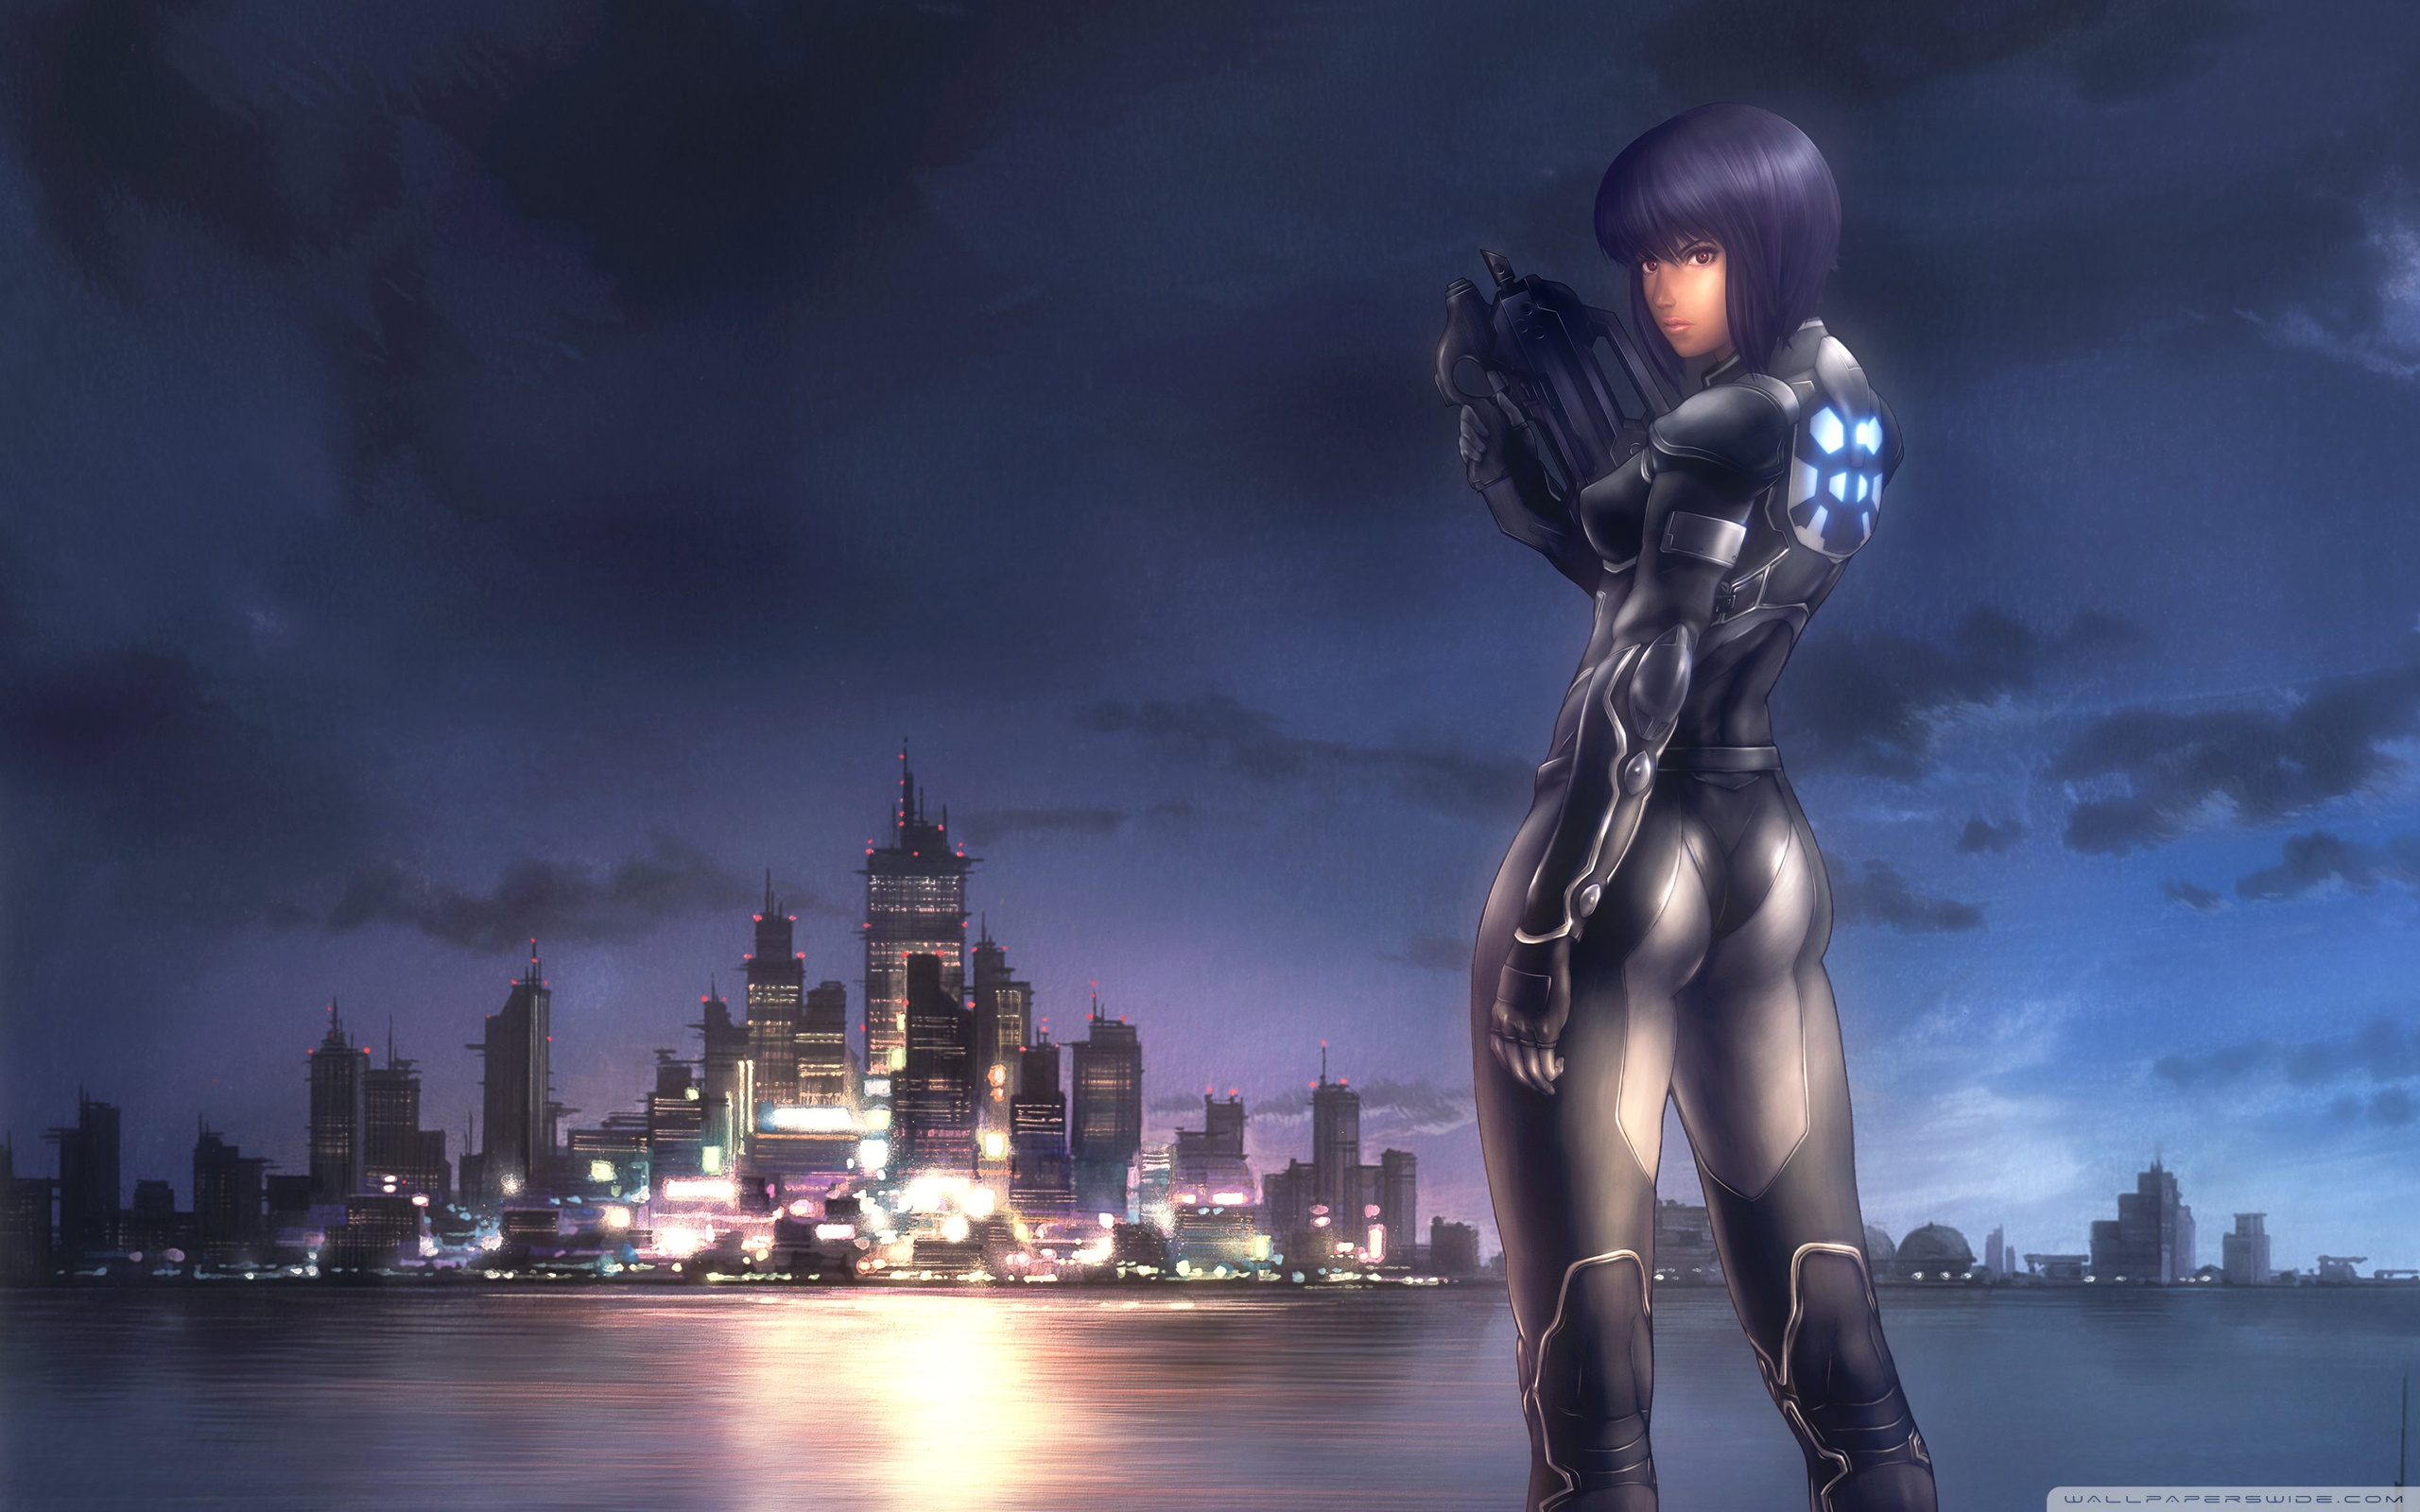 Motoko Kusanagi Wallpaper